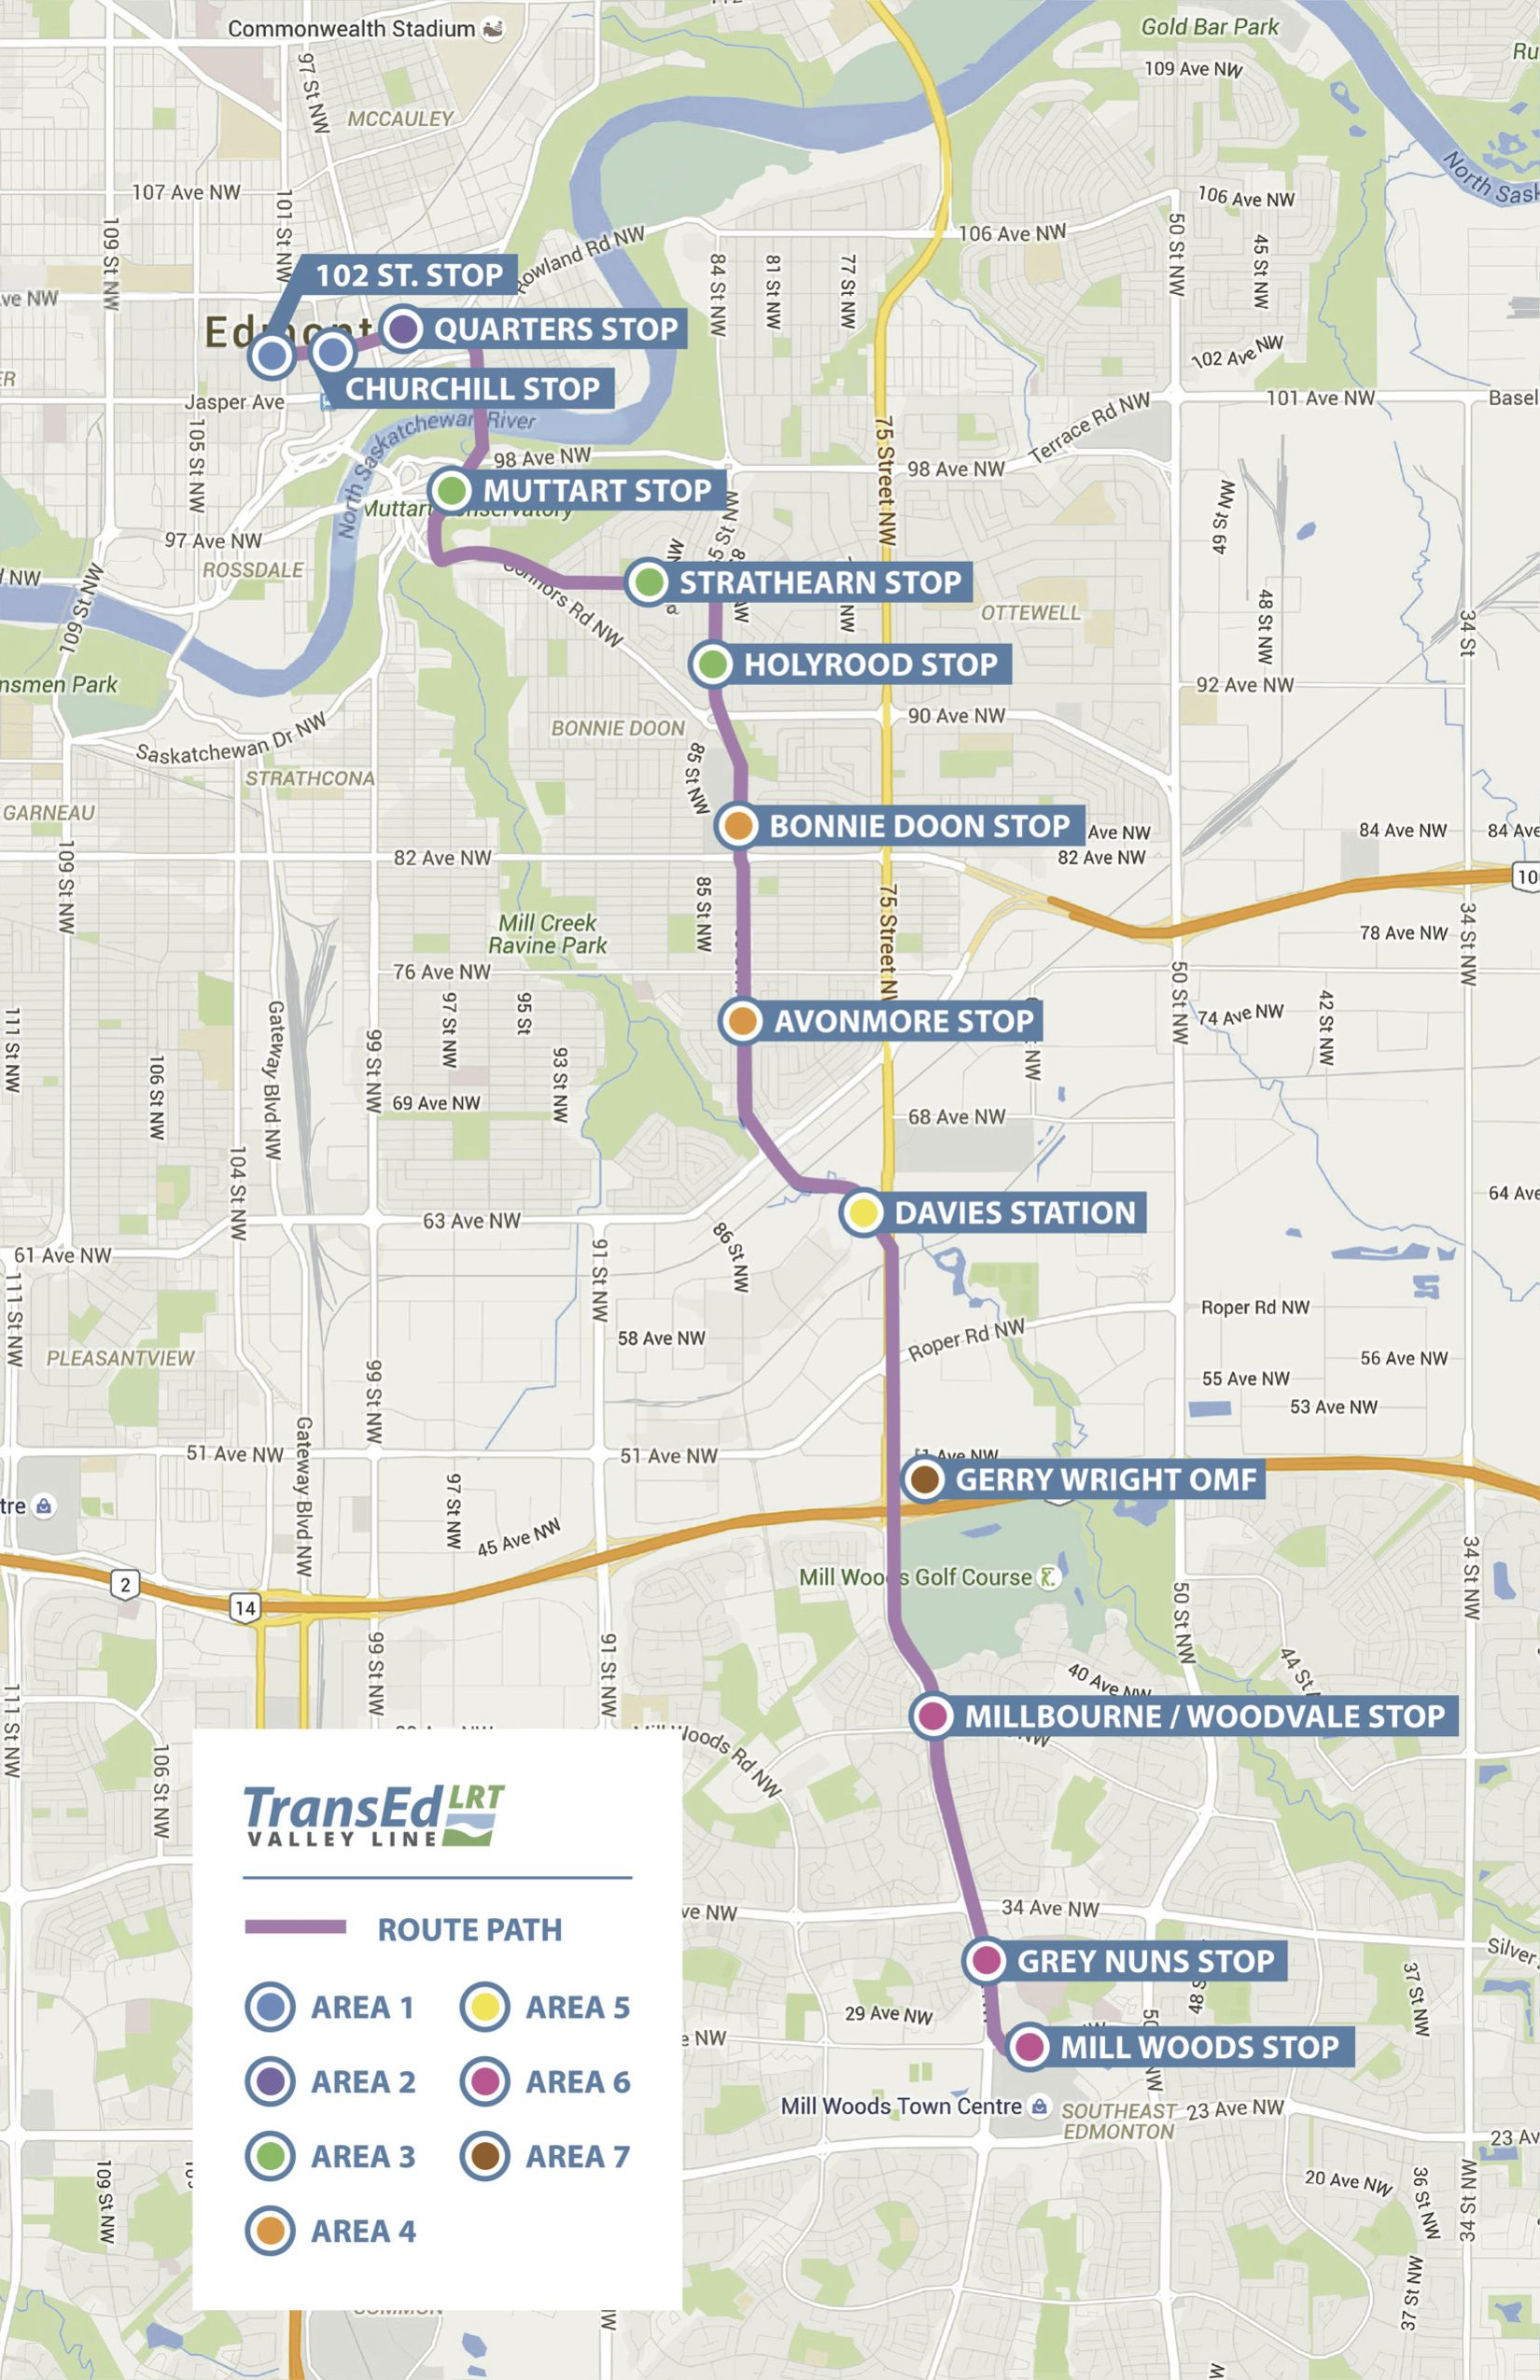 transed-routemap-areacoded-web